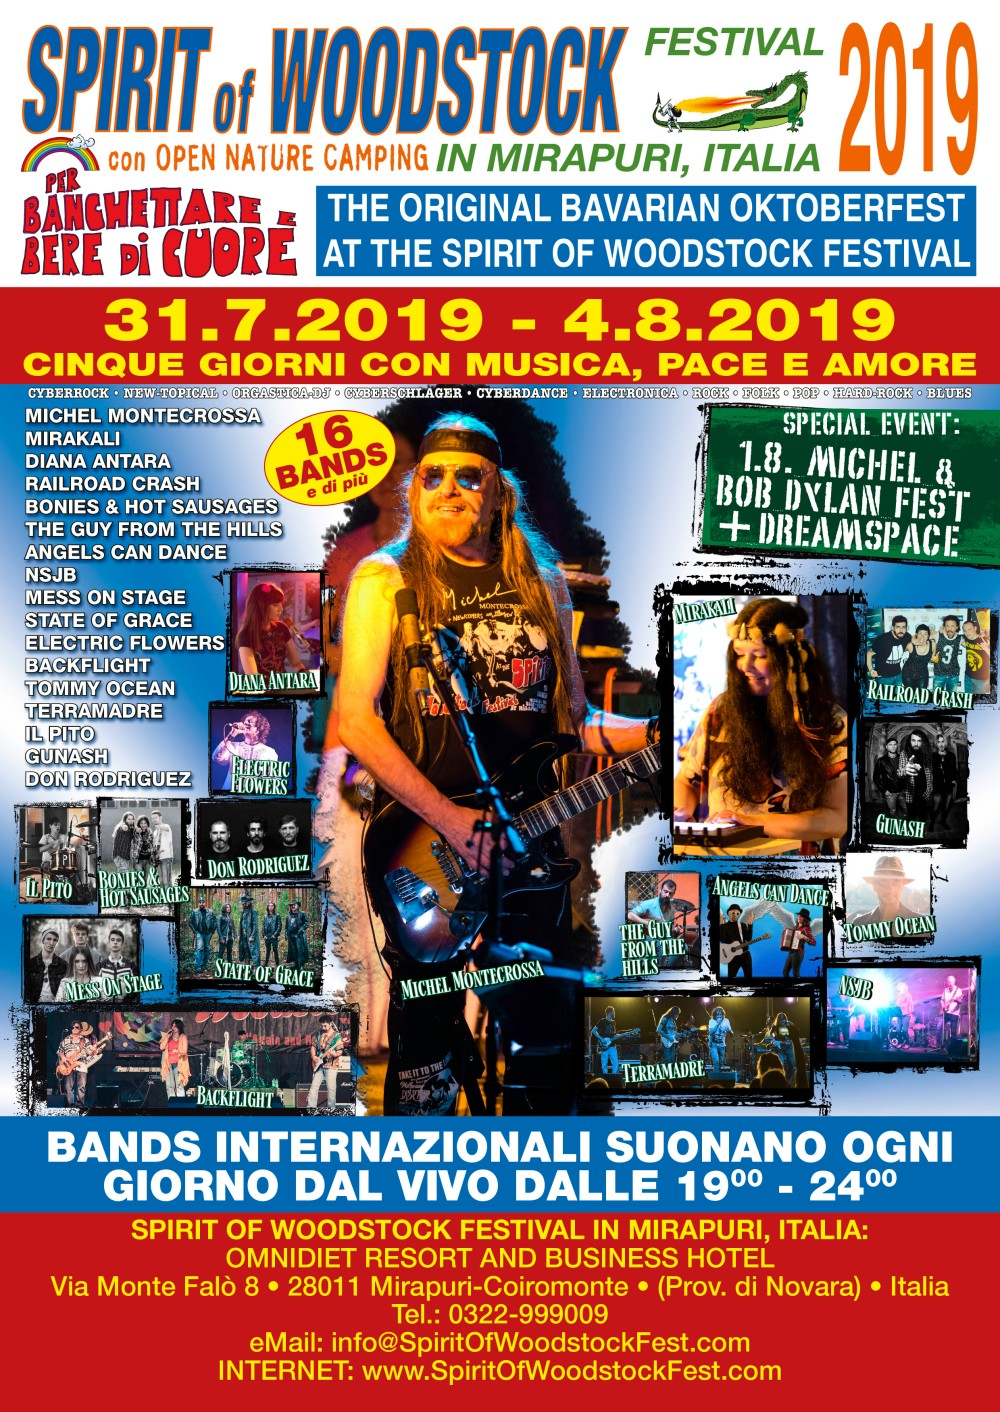 Spirit of Woodstock 19 Plakat v07-23.indd